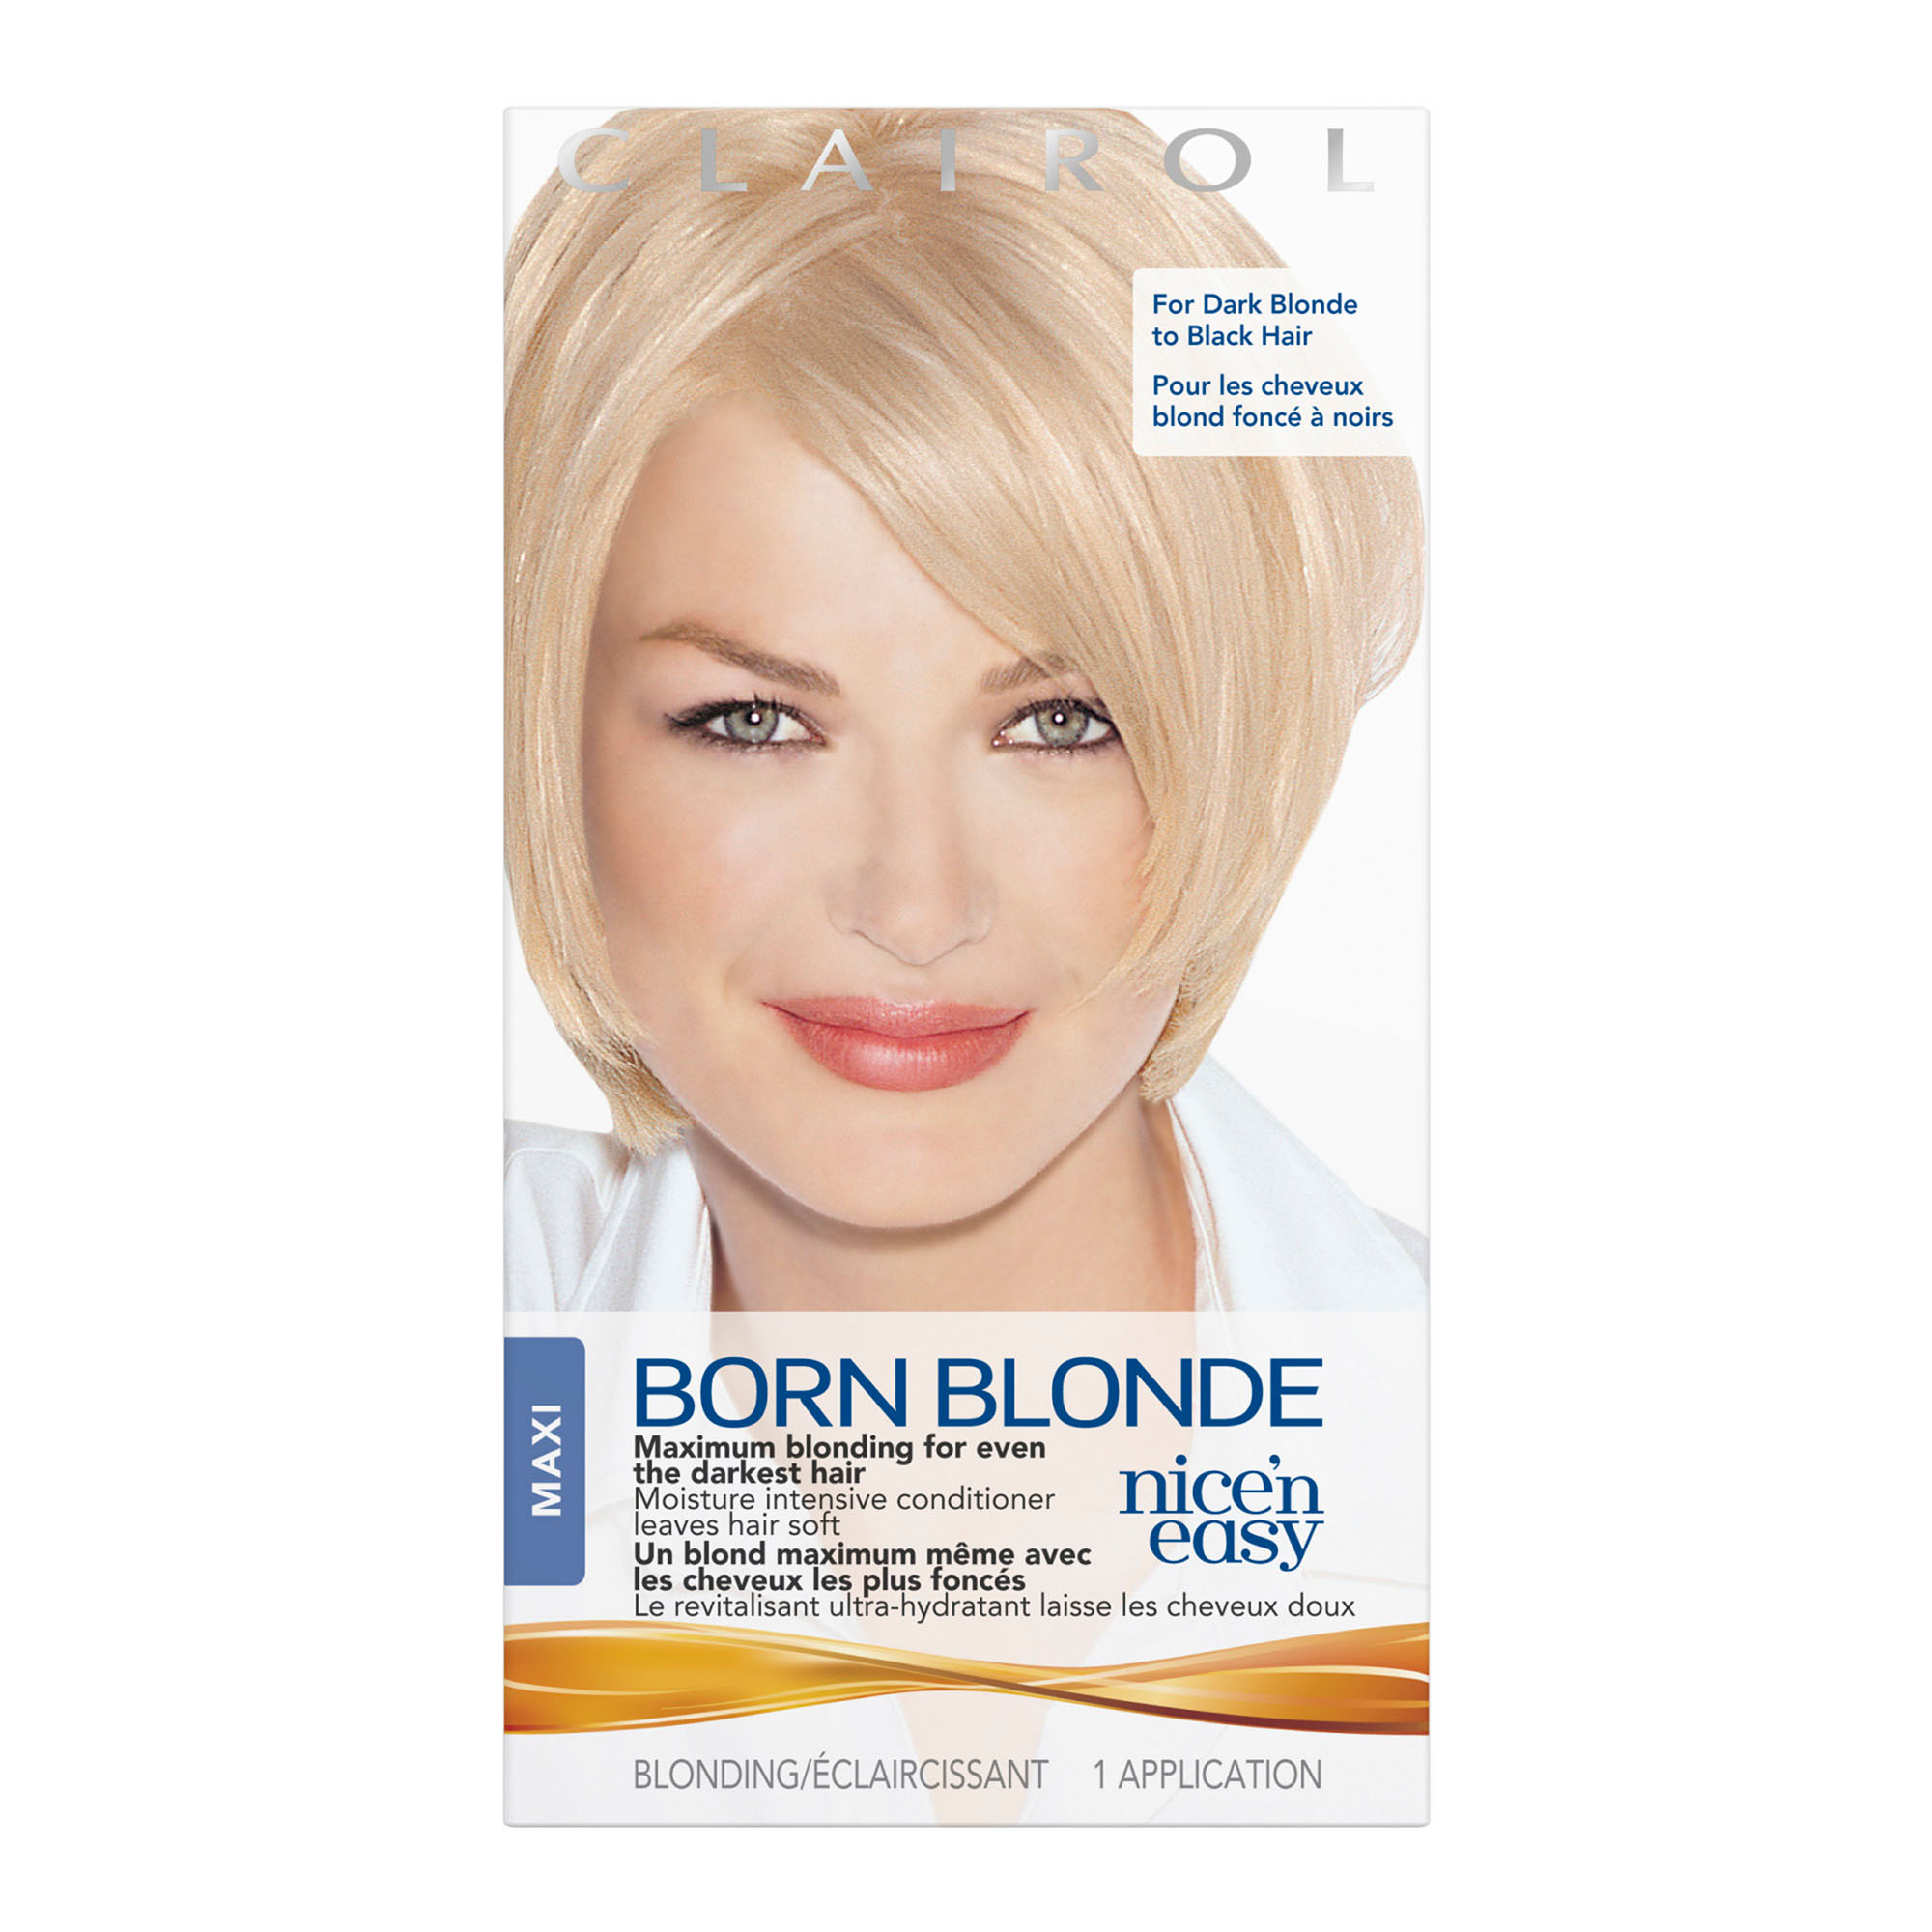 Born blonde toner color chart images free any chart examples clairol nice n easy born blonde maxi permanent hair color kit clairol nice n easy born nvjuhfo Image collections